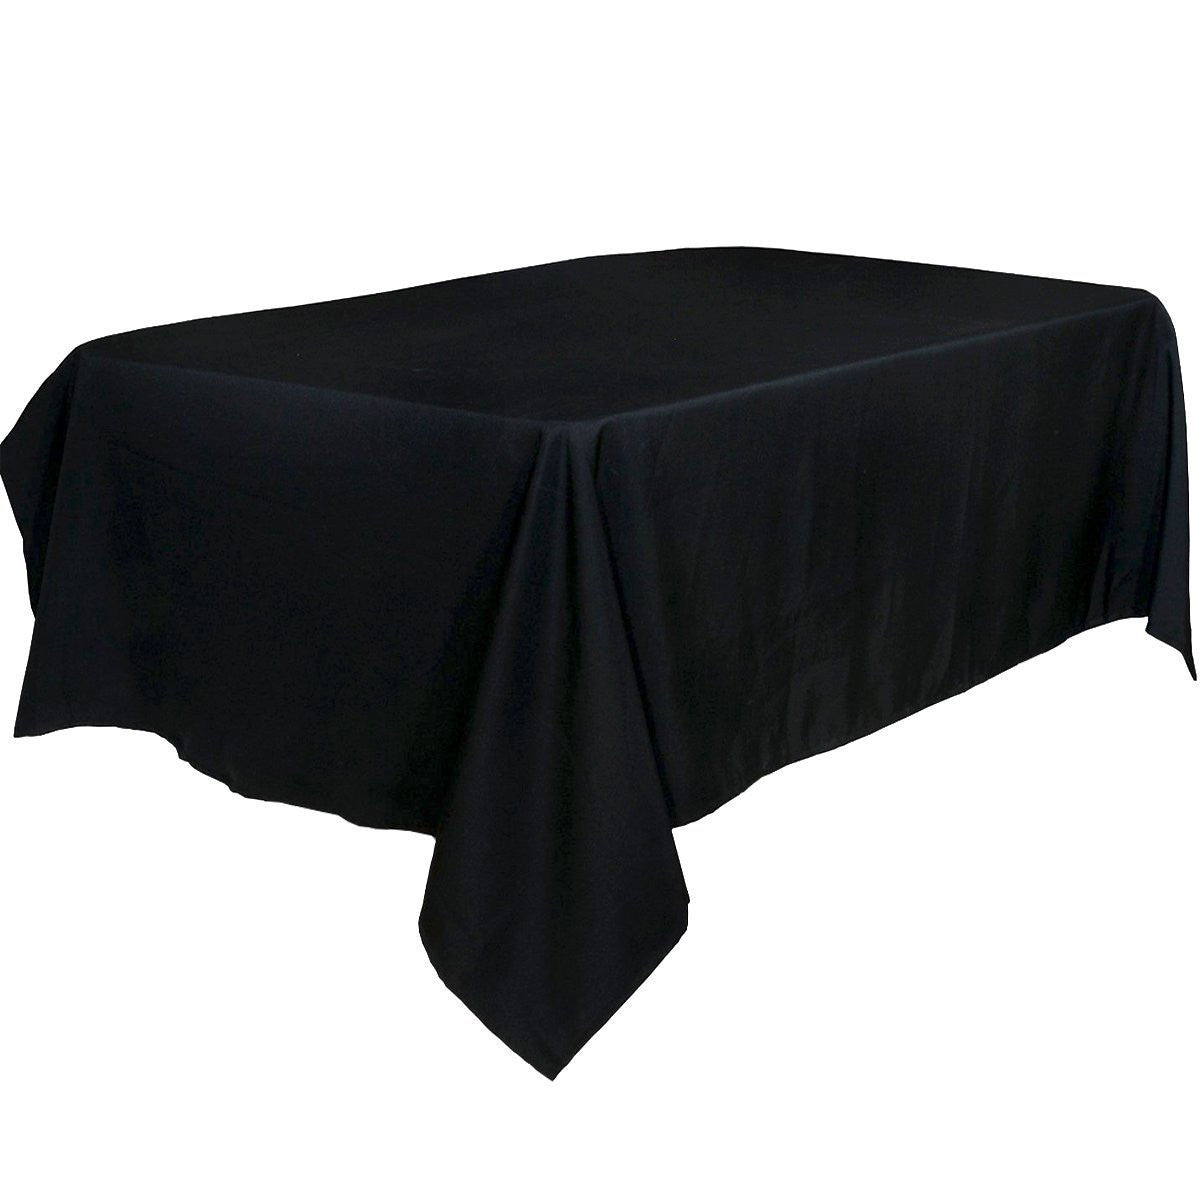 Black Rectangular Tablecloth 60 x 102-Inch